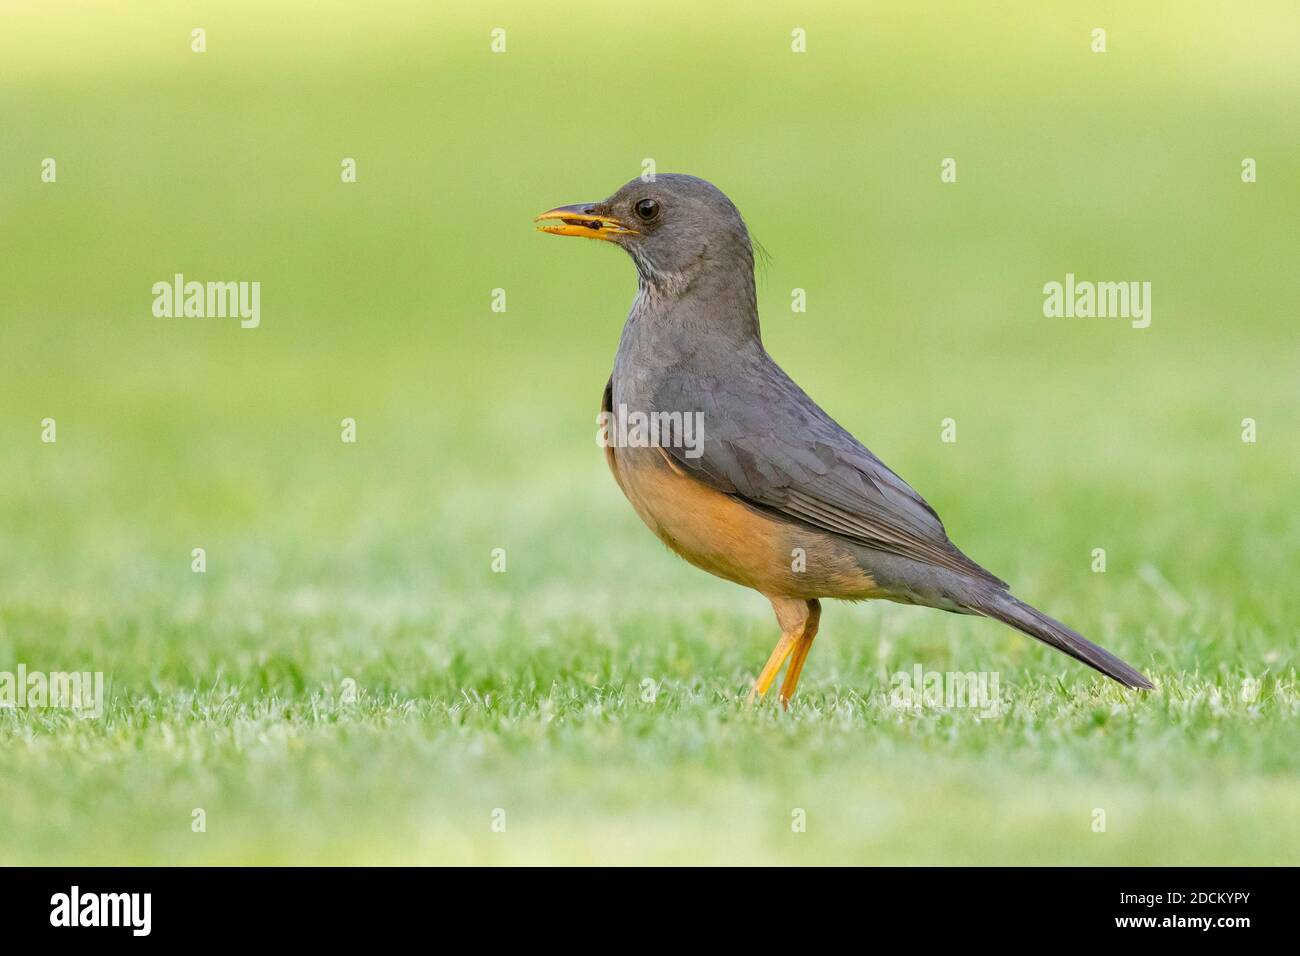 Olive Thrush (Turdus olivaceus), side view of an adult standing on the ground, Western Cape, South Africa Stock Photo